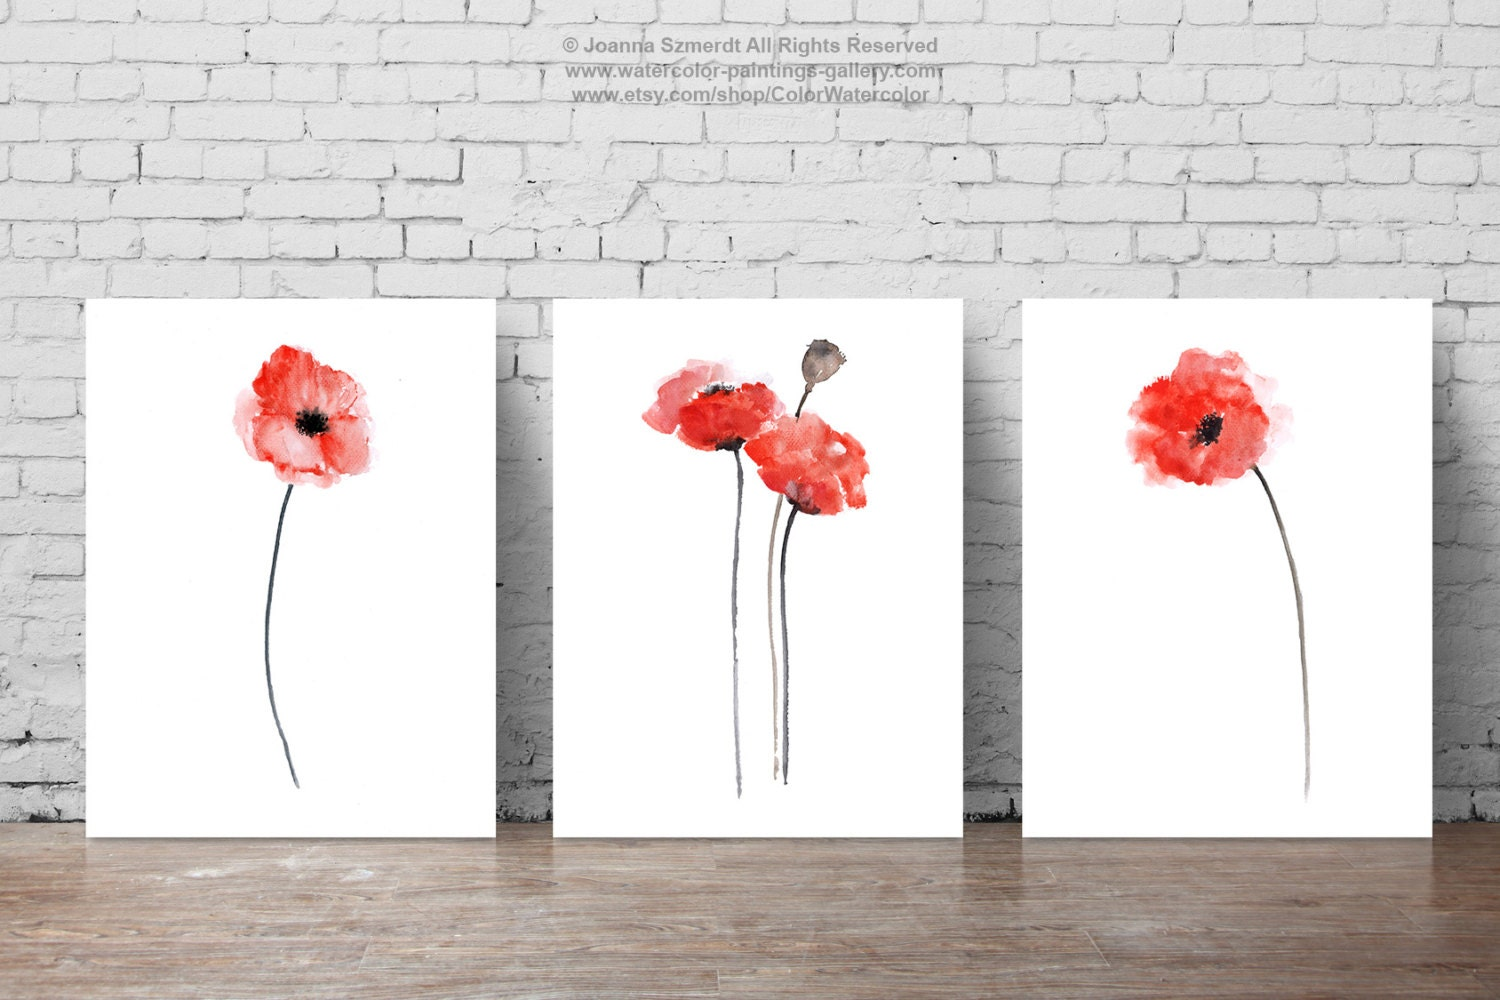 How to paint poppy flowers choice image flower decoration ideas poppy flower painting best flower 2017 how to paint poppy flowers with acrylic and a palette mightylinksfo Gallery